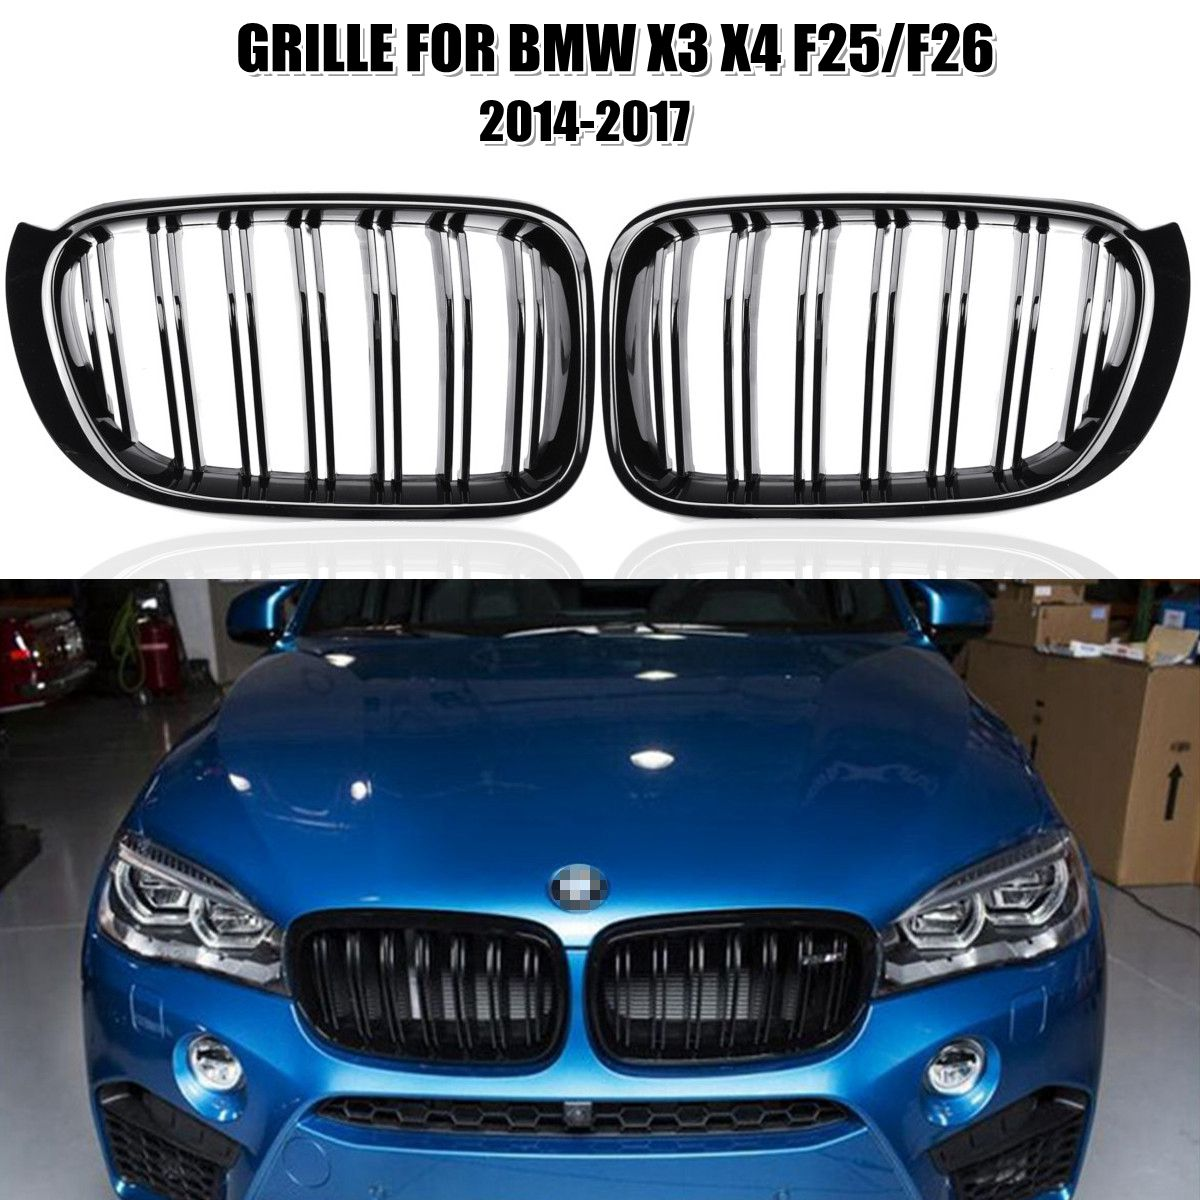 2Pcs M Style Car Front Kidney Grill Grille Gloss Black for BMW X3 X4 F25/F26 2014 2015 2016 2017 eosuns front bumper grill grille for bmw x3 x3 f25 18i 20i 28i 30dx 35ix 2010 2013